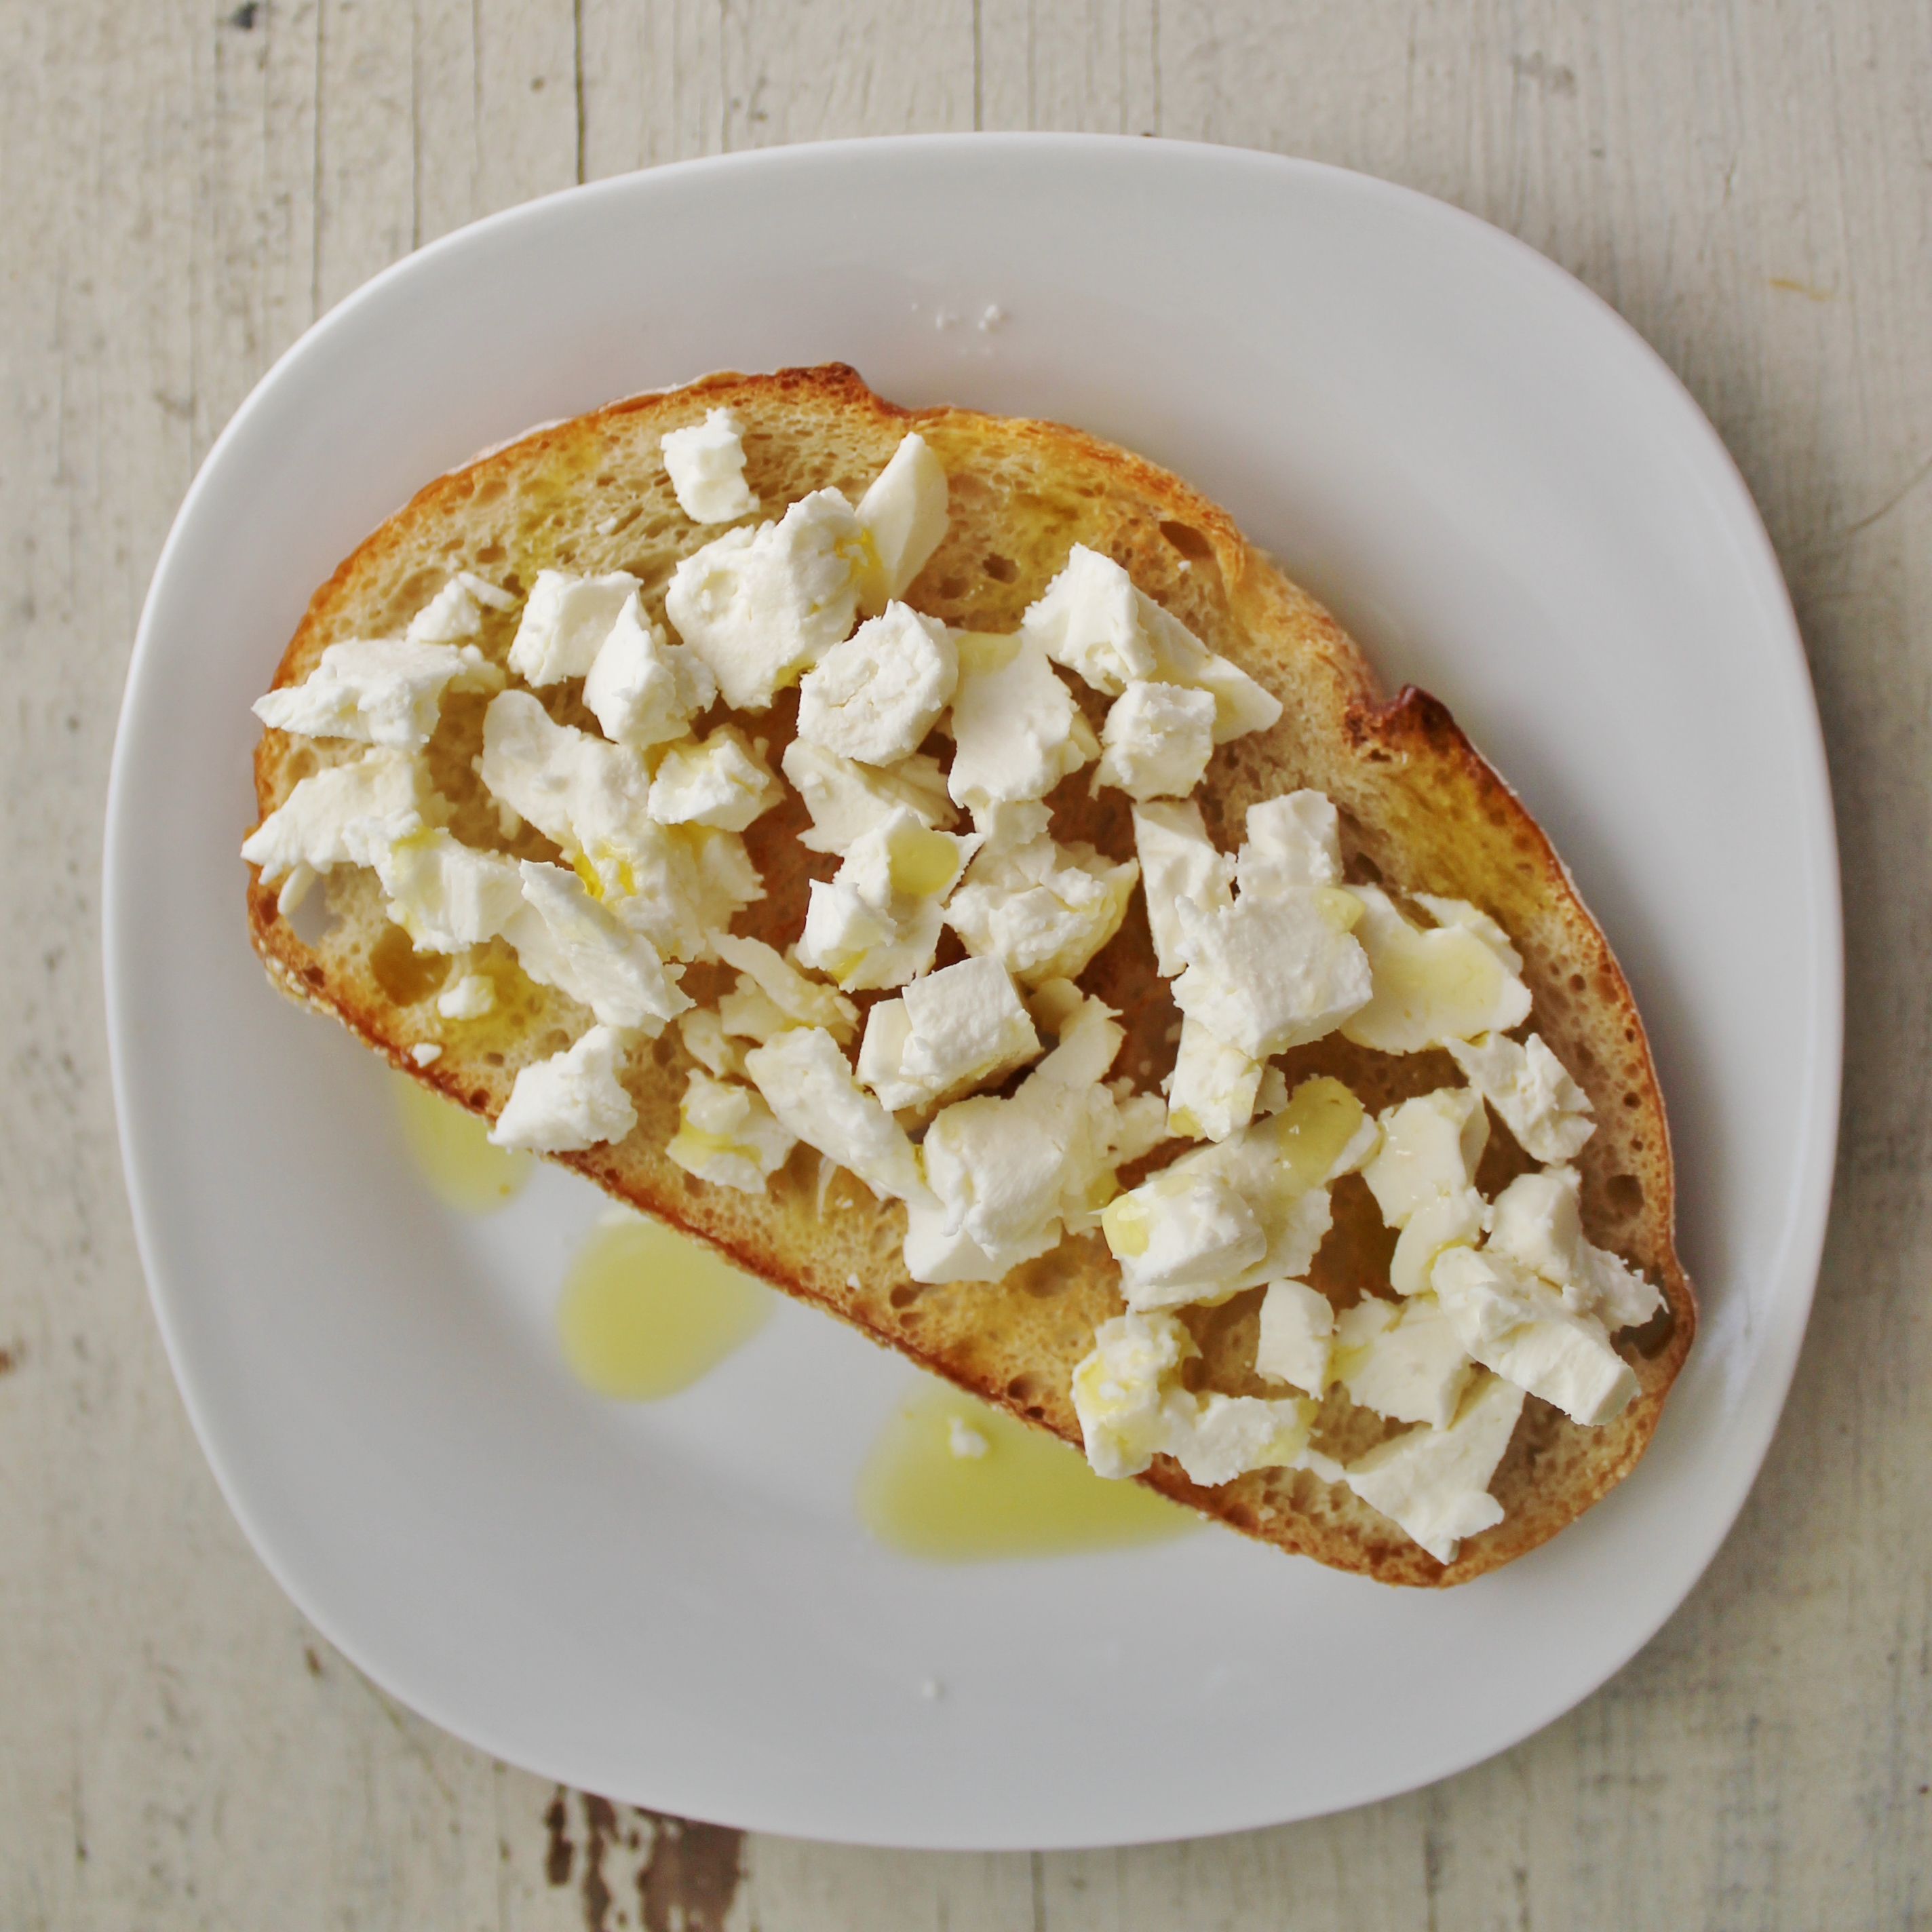 feta & olive oil toast |www.whatkumquat.com